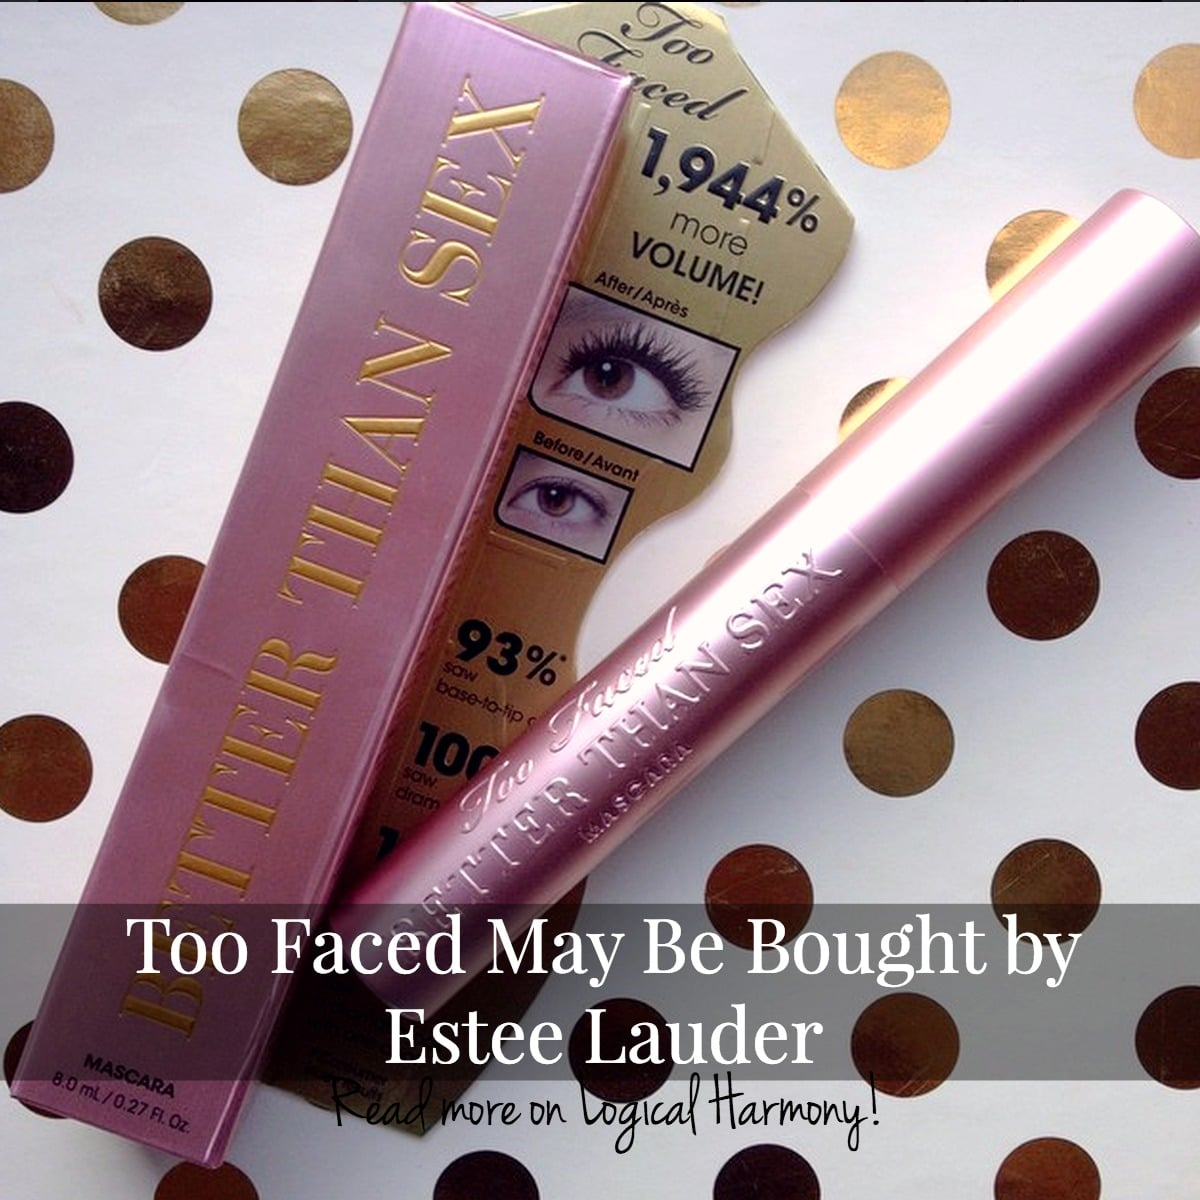 Too Faced May Be Bought by Estee Lauder - Logical Harmony